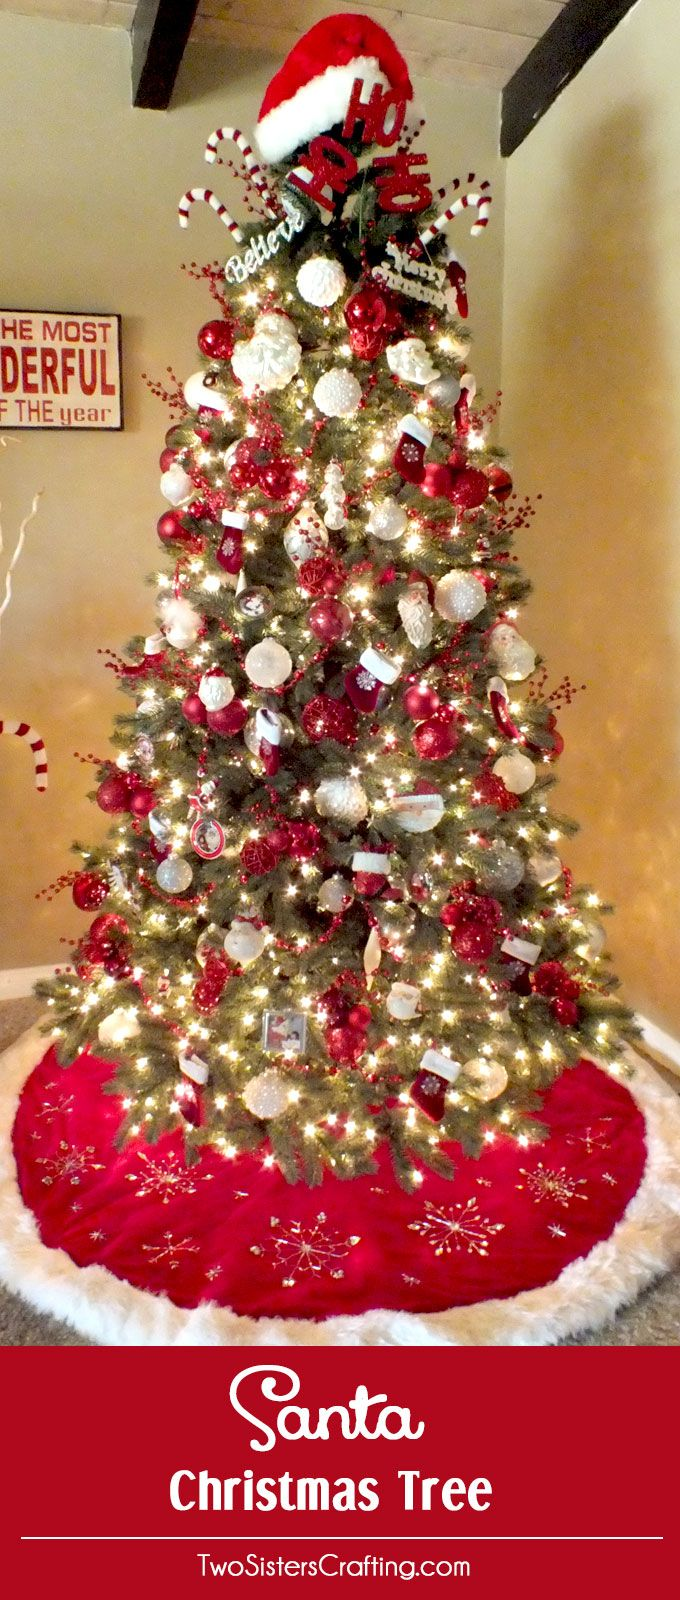 Describing beautiful christmas decorations - I Have Finally Figured Out The Perfect Formula For Christmas Tree Decorating And I Share These